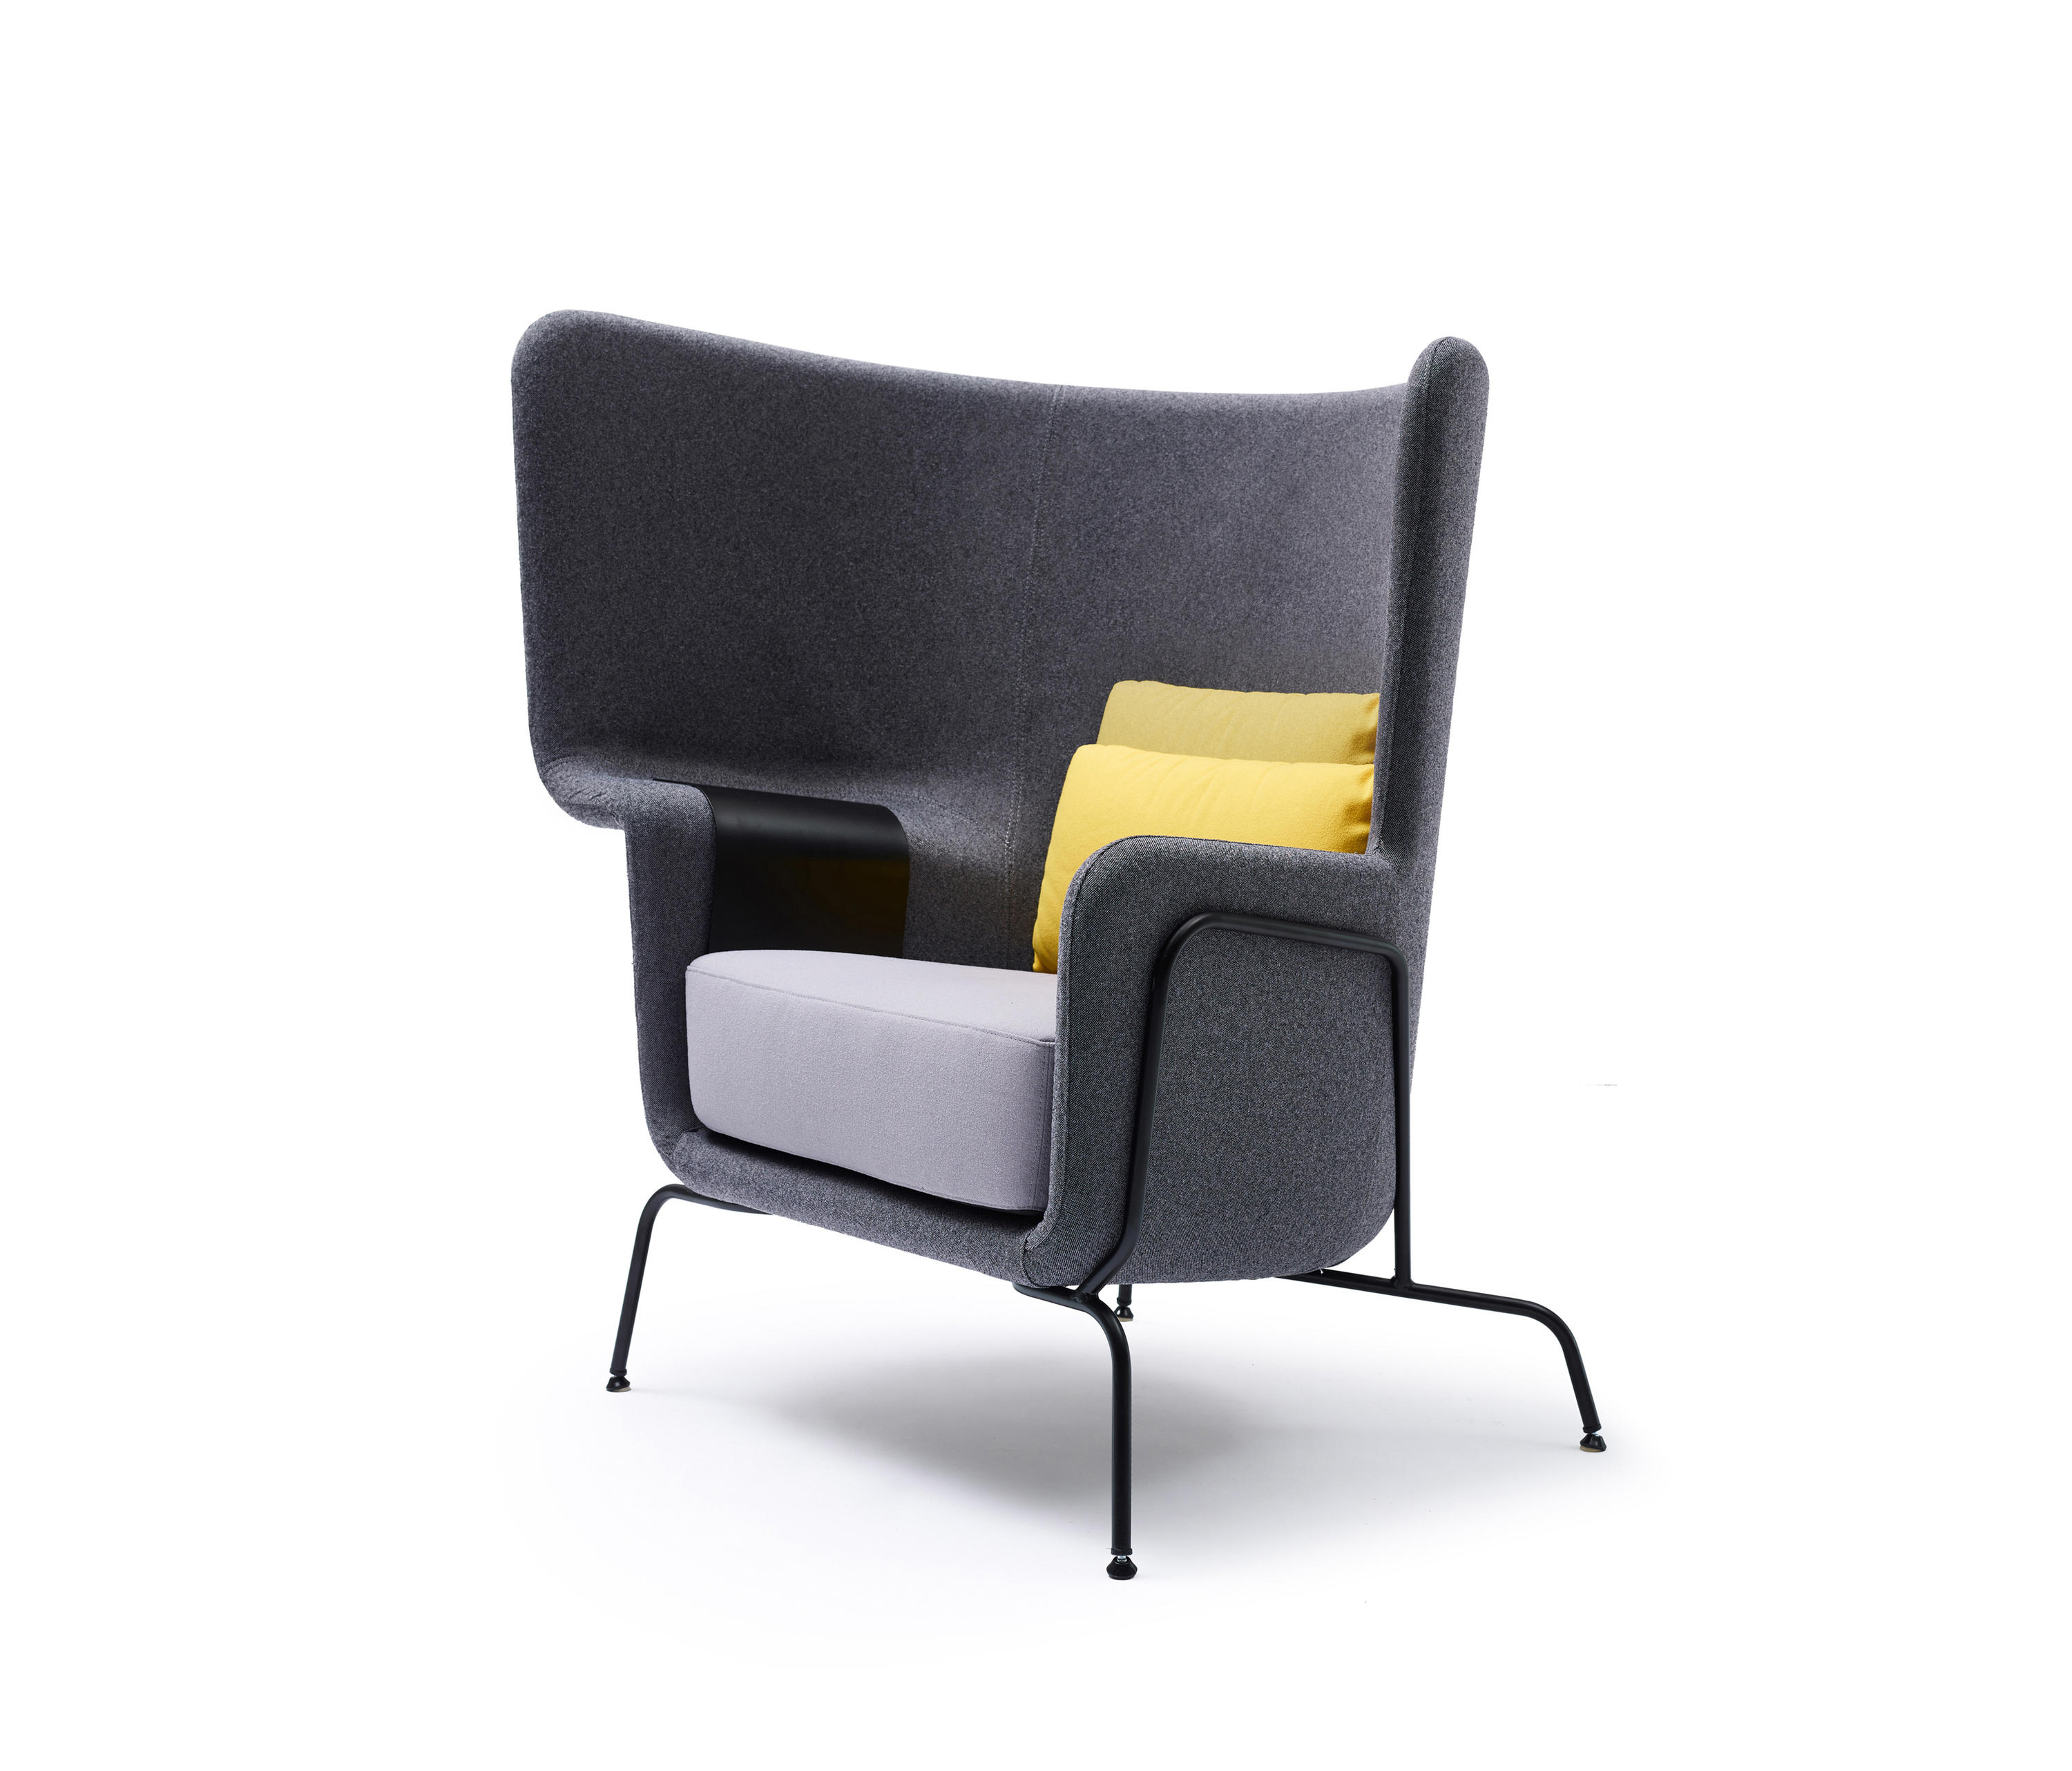 Quinti Sedute New York Hip Armchairs From Quinti Sedute Architonic